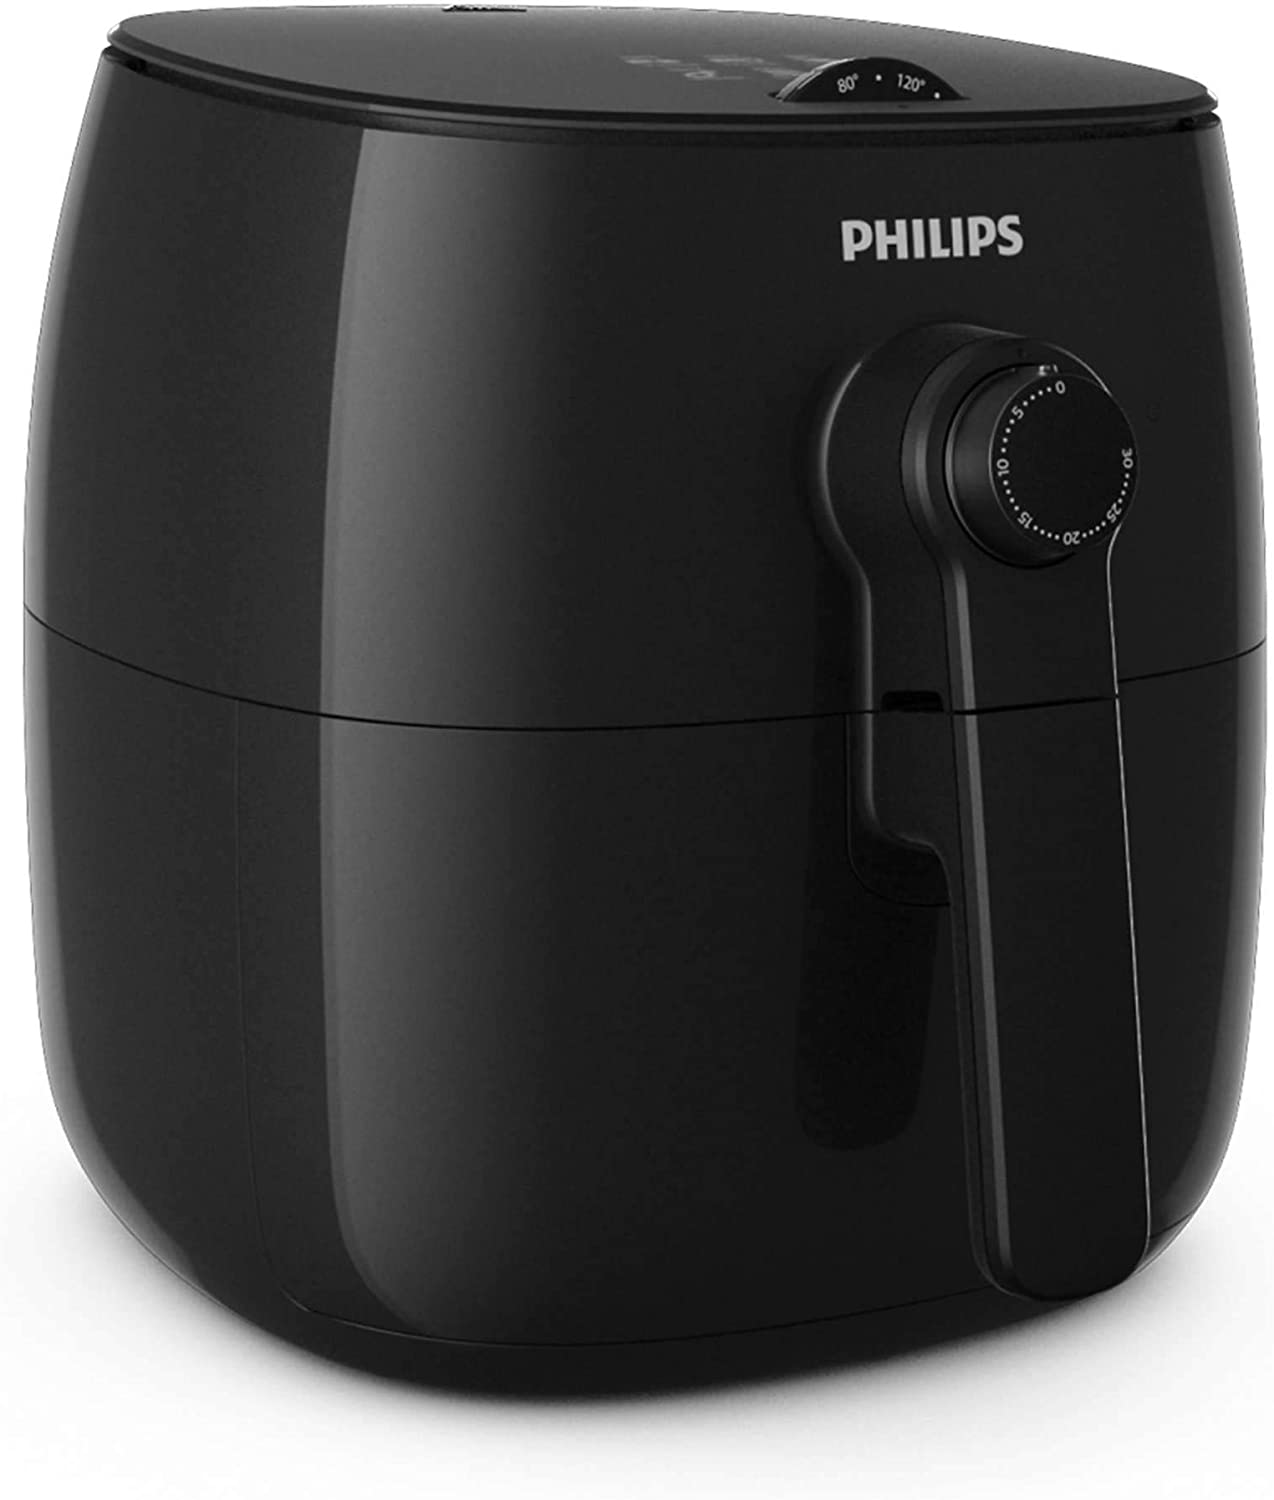 Philips Viva Turbostar Airfryer (1.8lb/2.75qt), Black - HD9628/96 (Includes Grill Pan and Baking Dish)